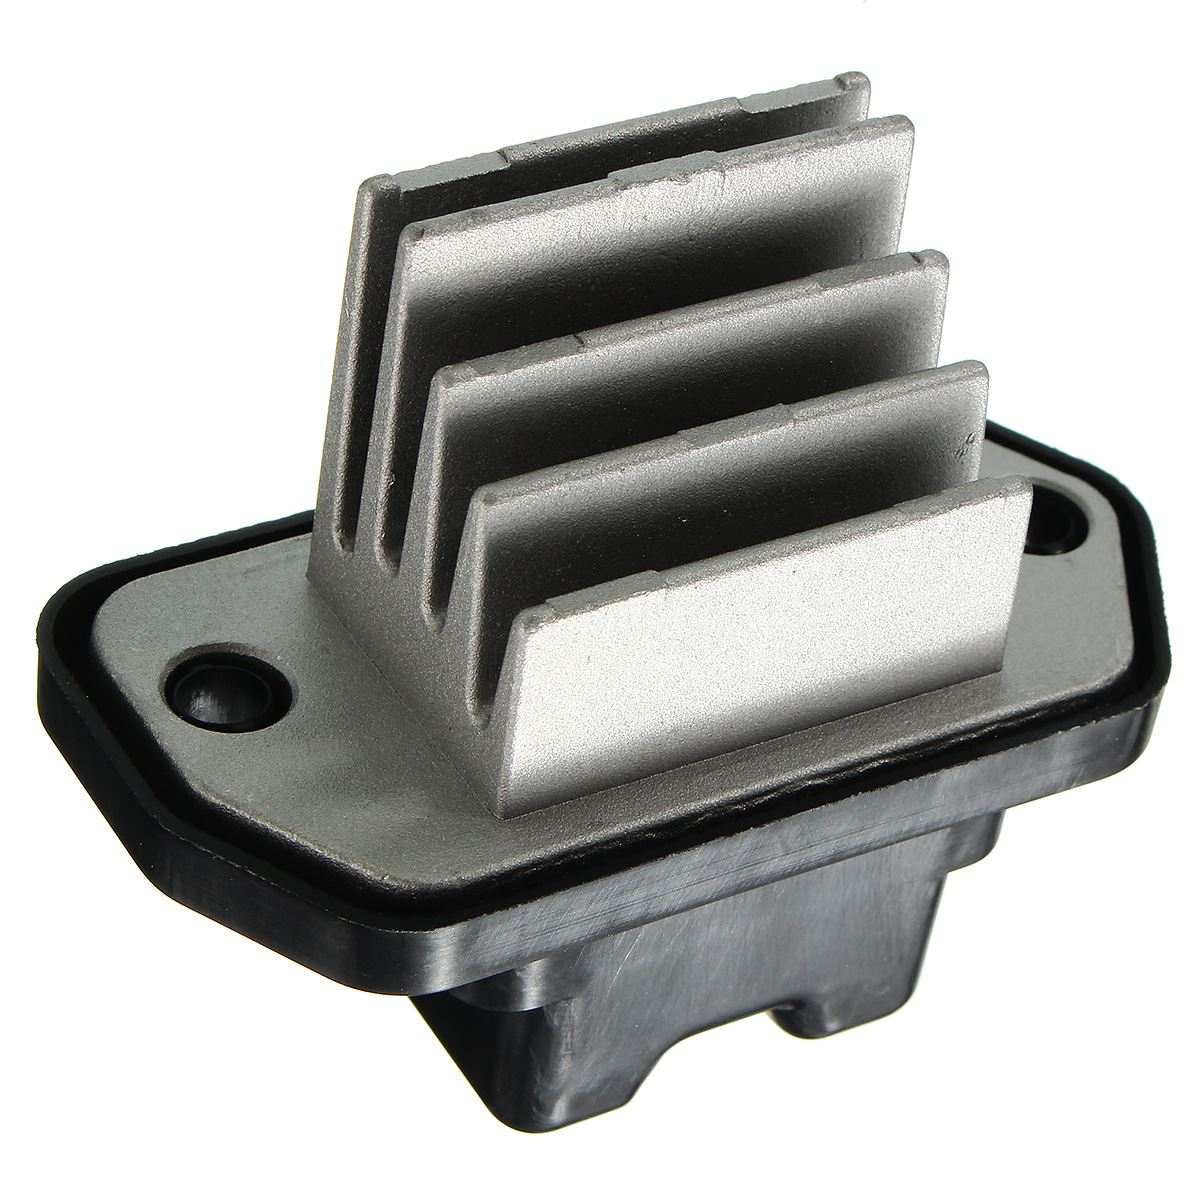 New Heater Blower Motor Fan Resistor For Honda /Accord 2003 2007 /Acura /TL  2004 2008 /RSX 2002 2006 20270 79330S6M941-in Blower Motors from  Automobiles ...